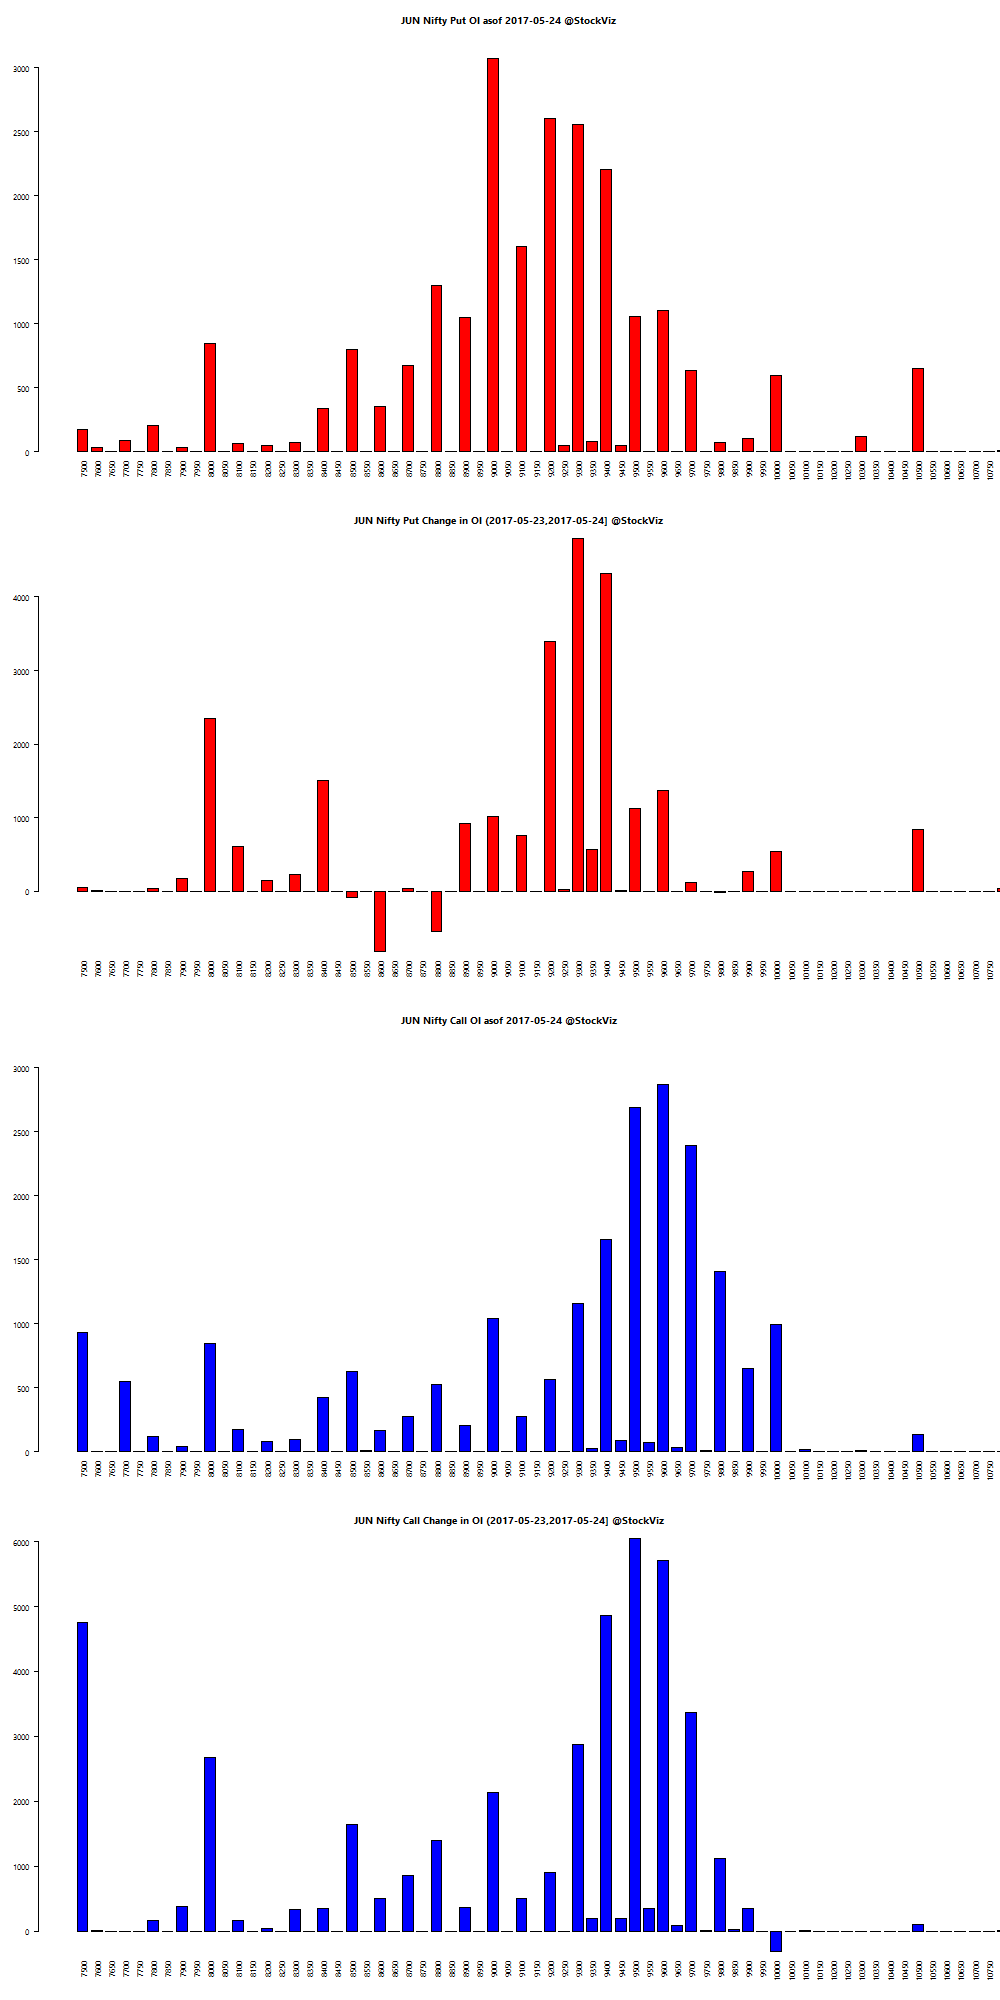 JUN NIFTY OI chart